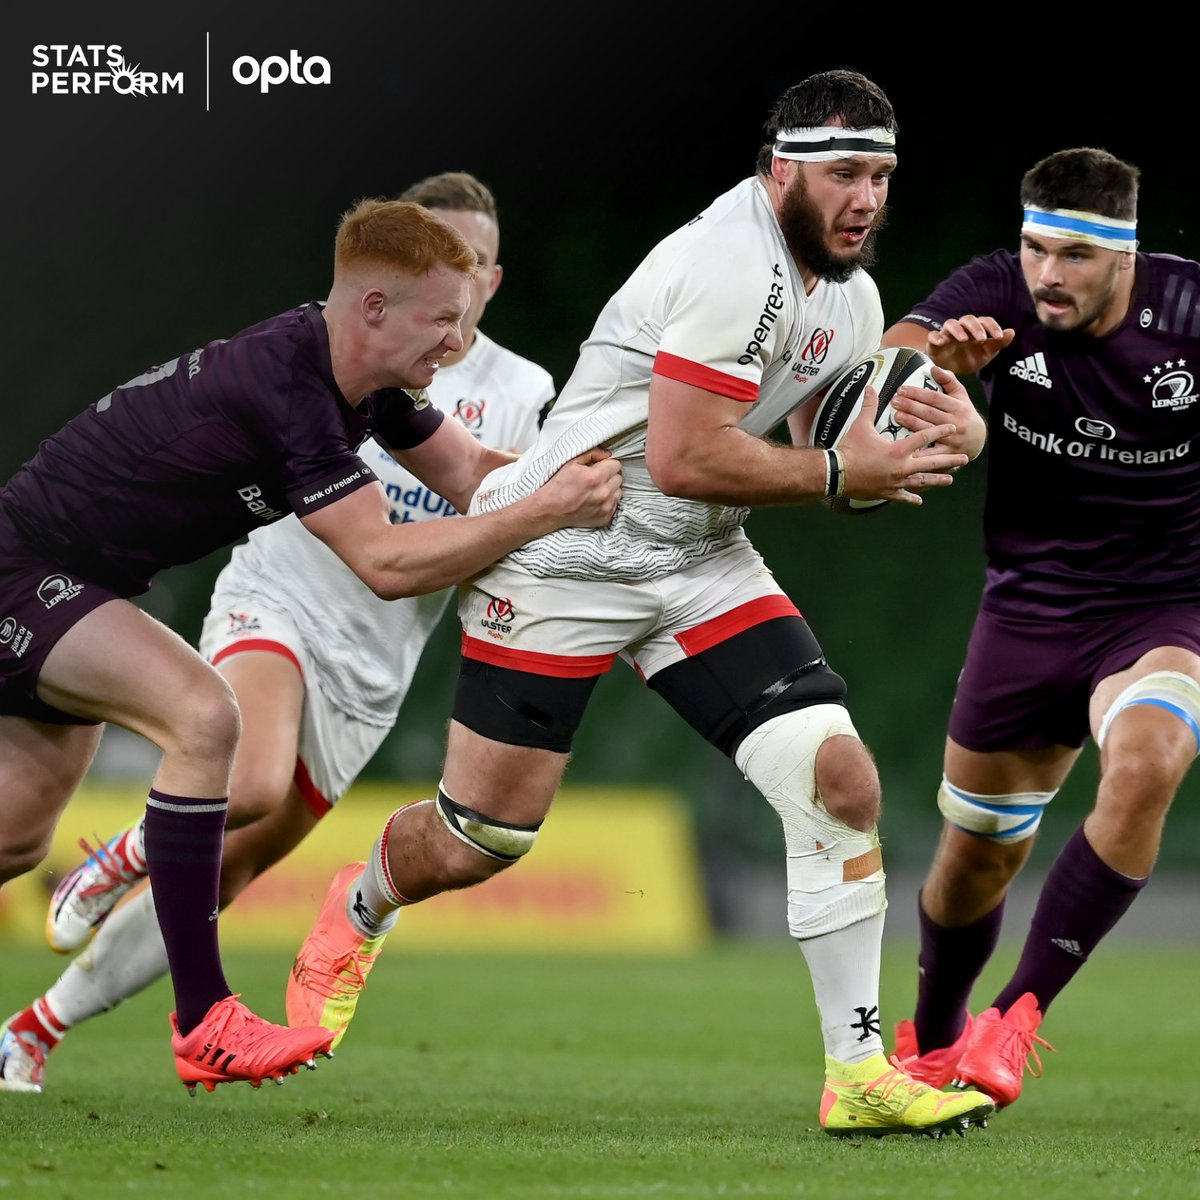 291 - @UlsterRugby have averaged a combined 291 carries (132) and tackles (159) in the @PRO14Official this season, more than any other side, while @leinsterrugby have averaged the second most (276 - 136 carries, 140 tackles). Breathless. https://t.co/SeRfvkmsQc